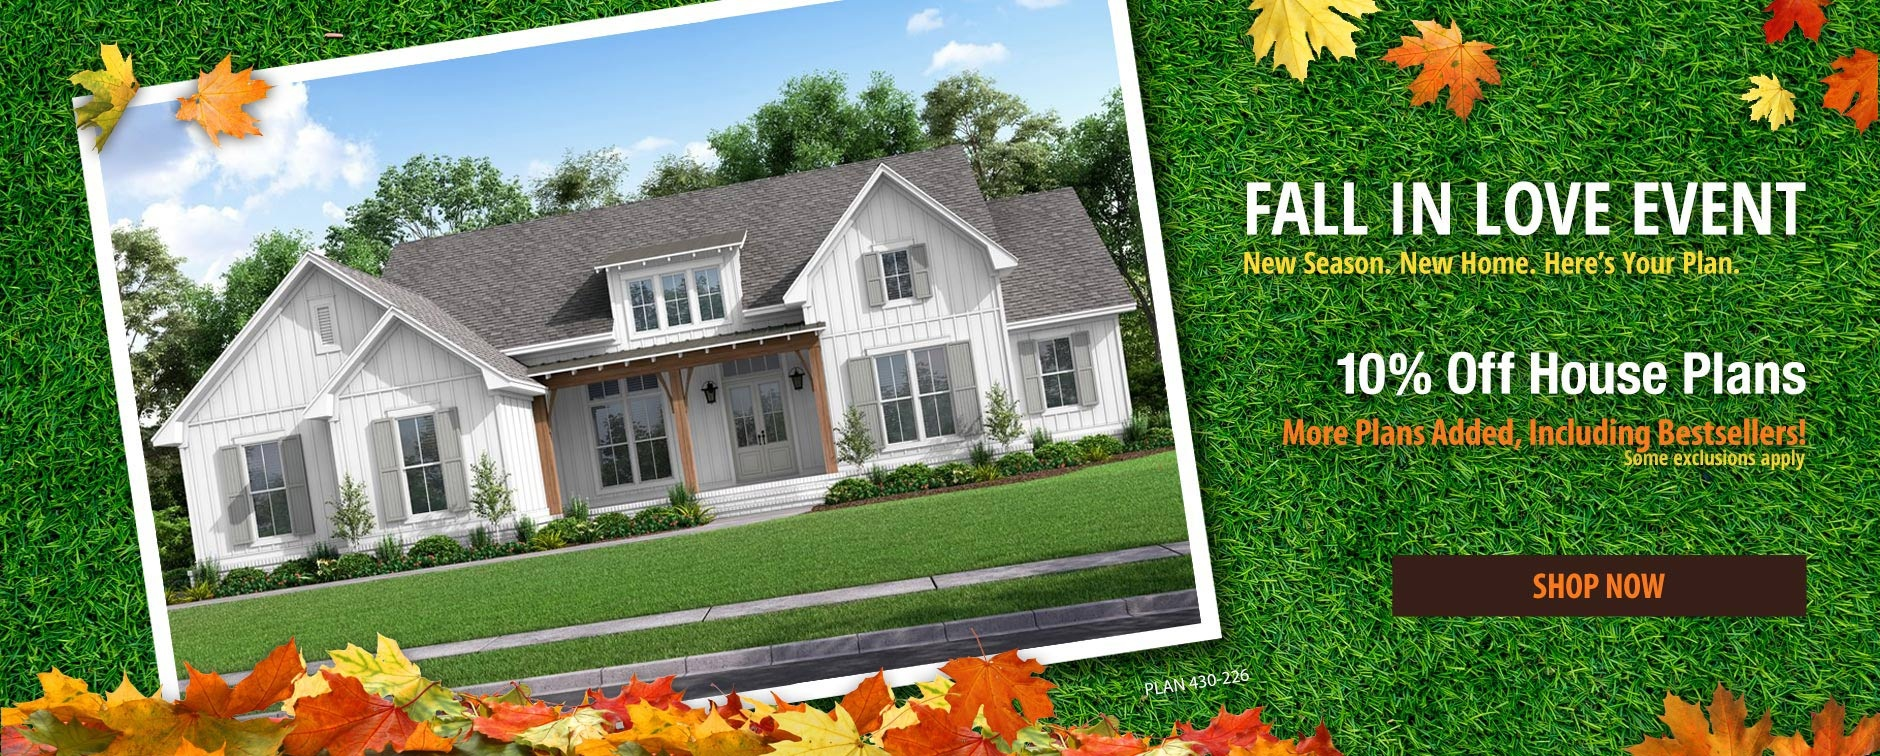 Floor Plan Sale 10% Off with More Plans Added